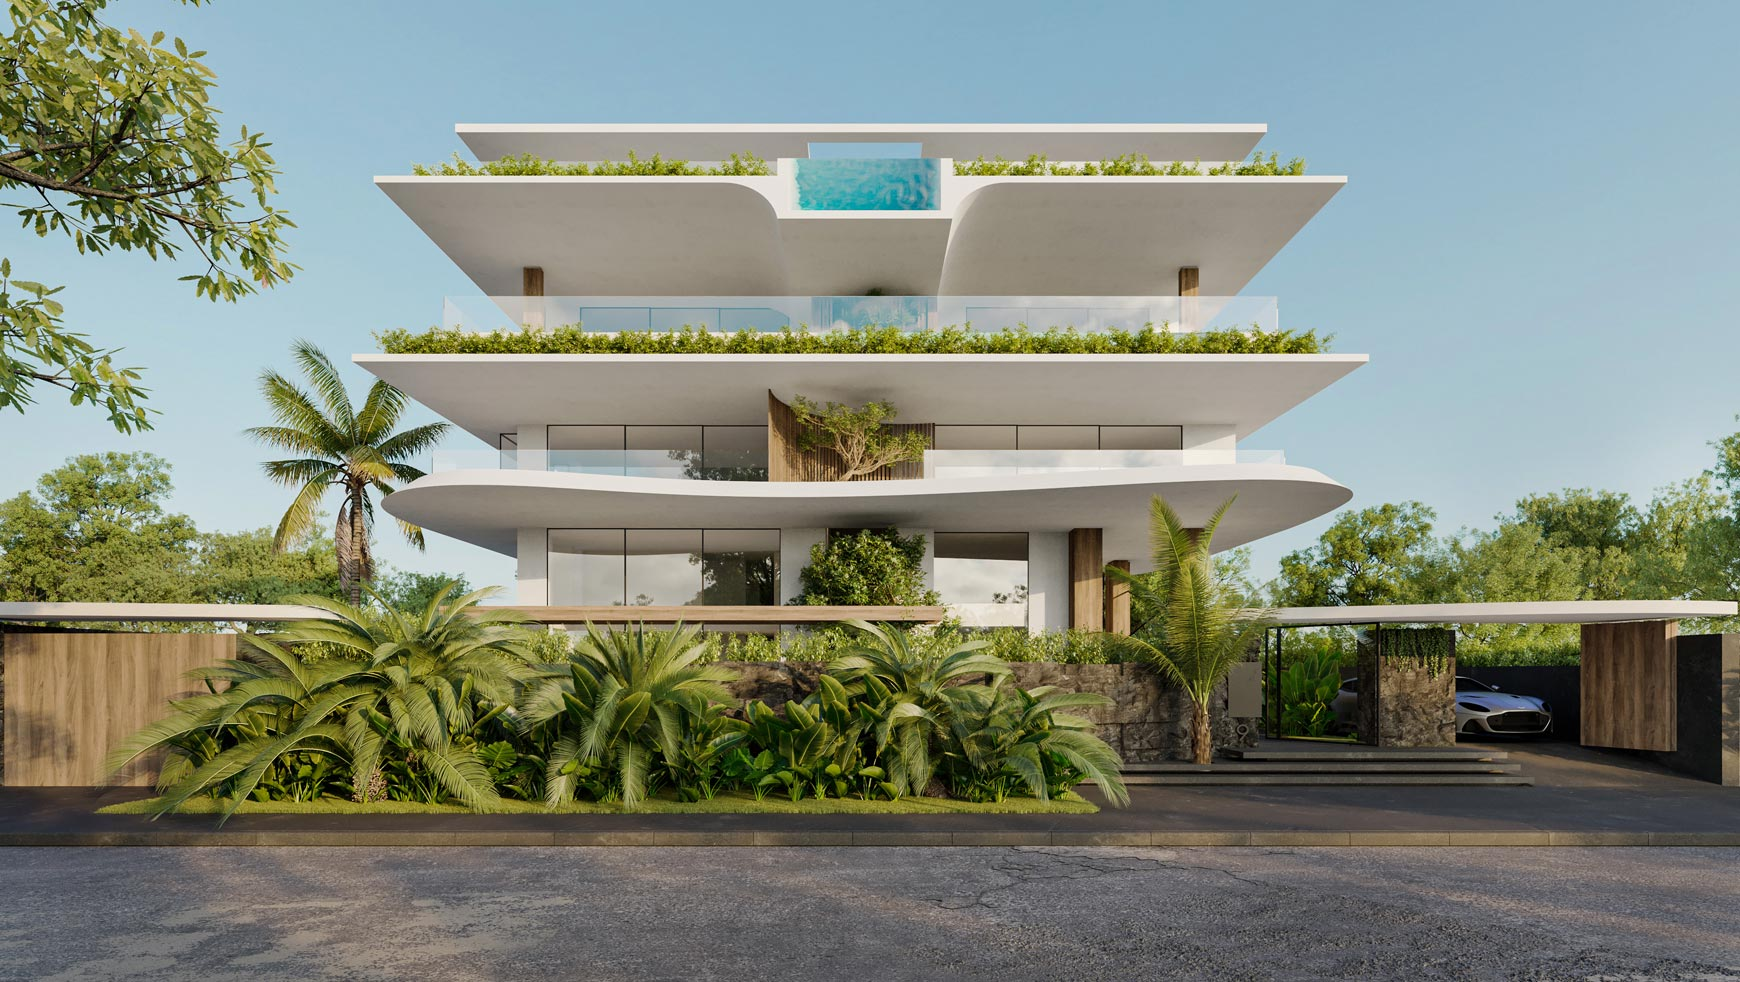 FIVE STOREY BUILDING IN THE DISTRICT OF VOULIAGMENI